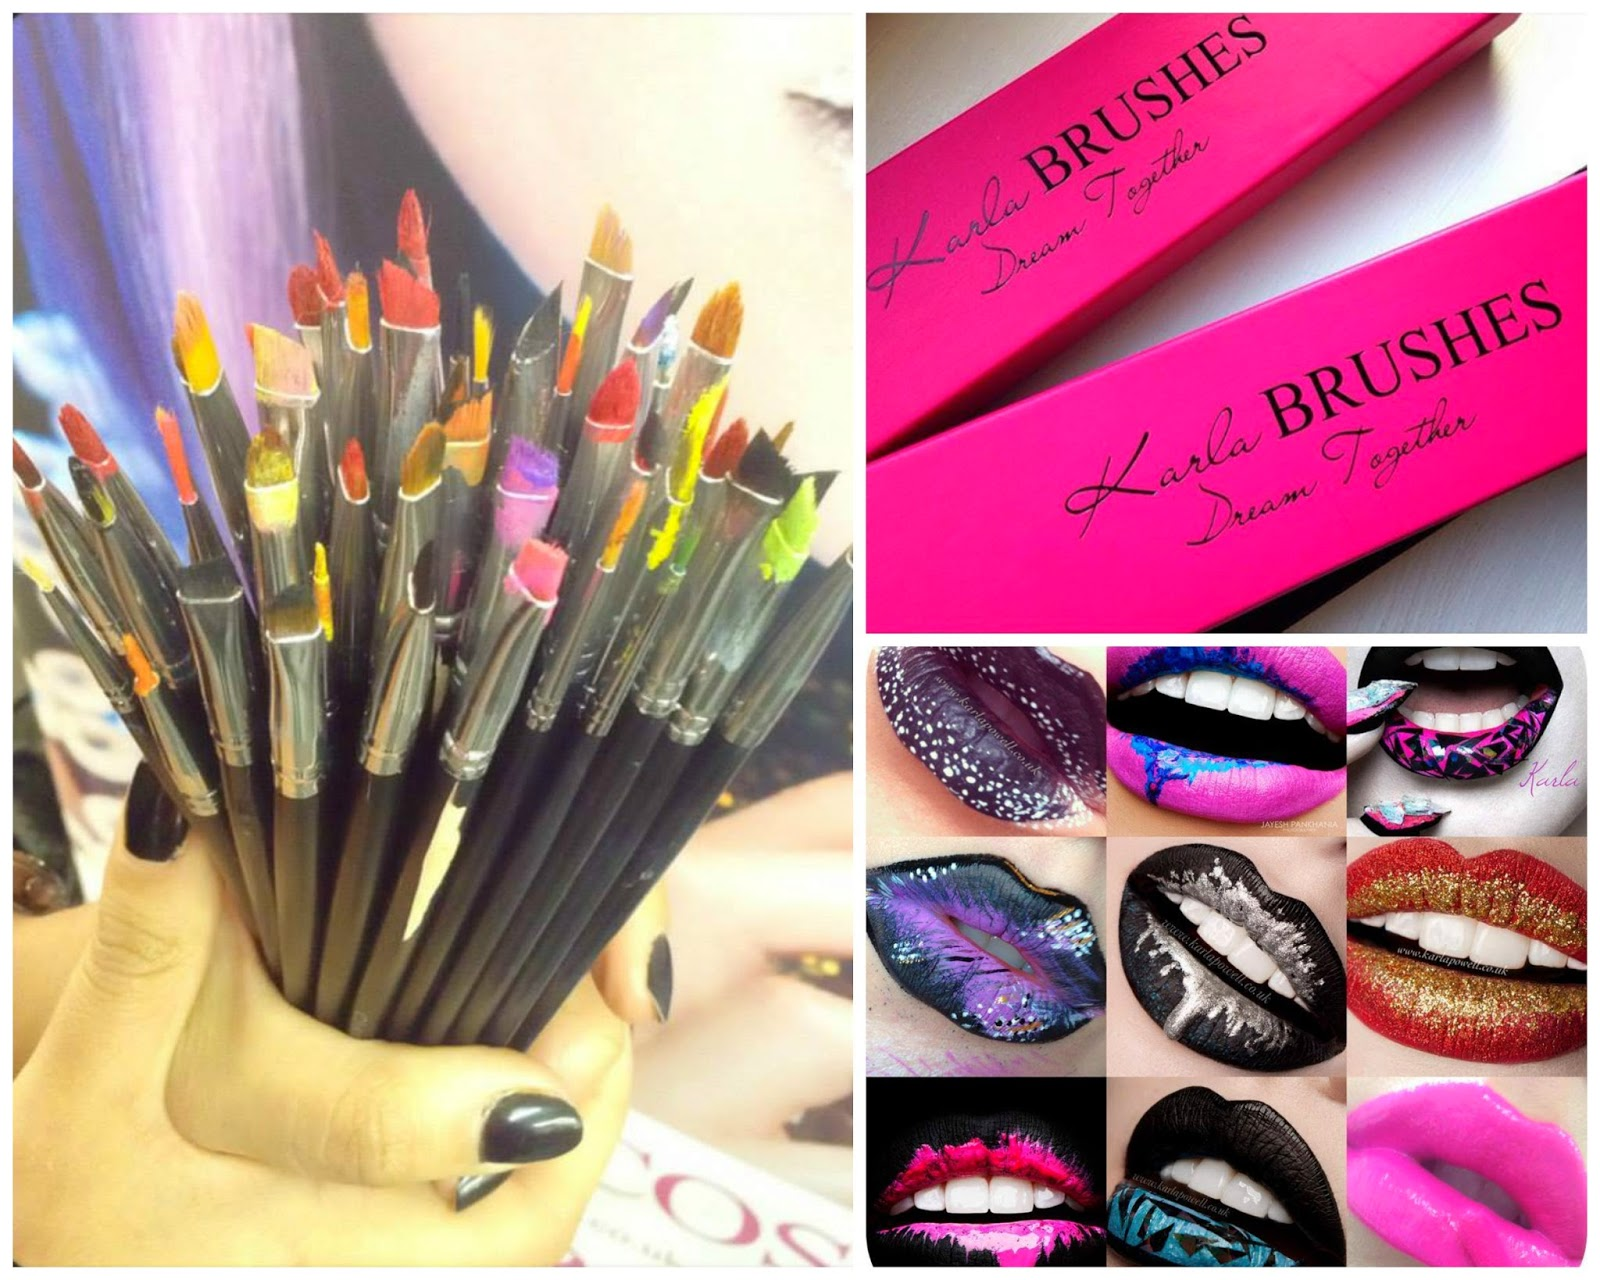 Karla Powell, Karla Cosmetics, Beauty, correct tools, daily make up brushes, how to create flawless lip make up, make up brush collection, using make up brushes, why do I need make up brushes,